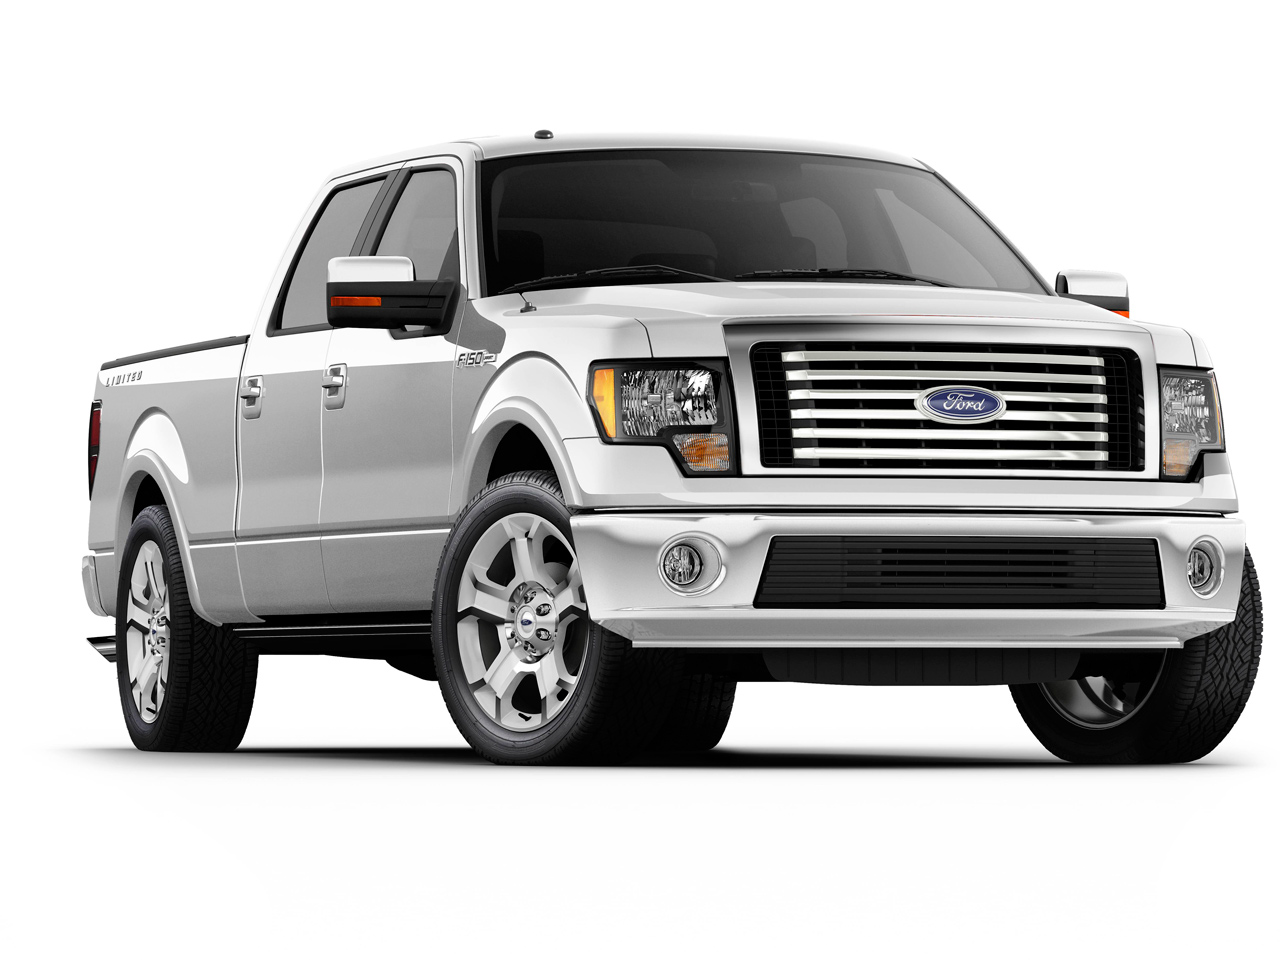 2011 ford f 150 ecoboost v6 figures released ford news blog. Black Bedroom Furniture Sets. Home Design Ideas